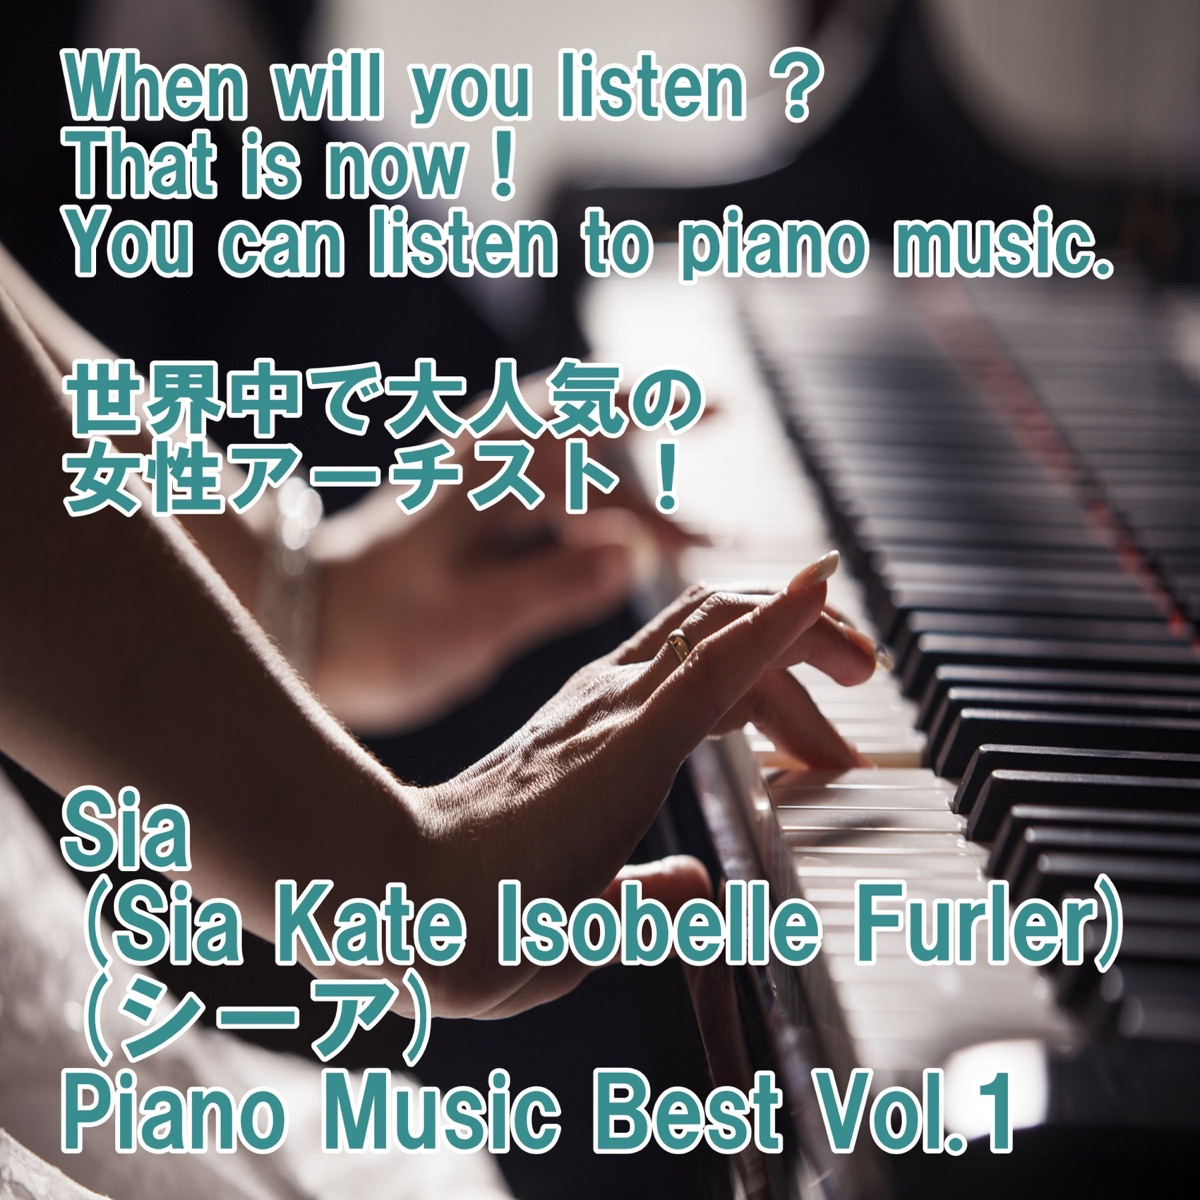 Angel Piano Sia Piano Music Best Vol 1 - EP angel piano CD cover